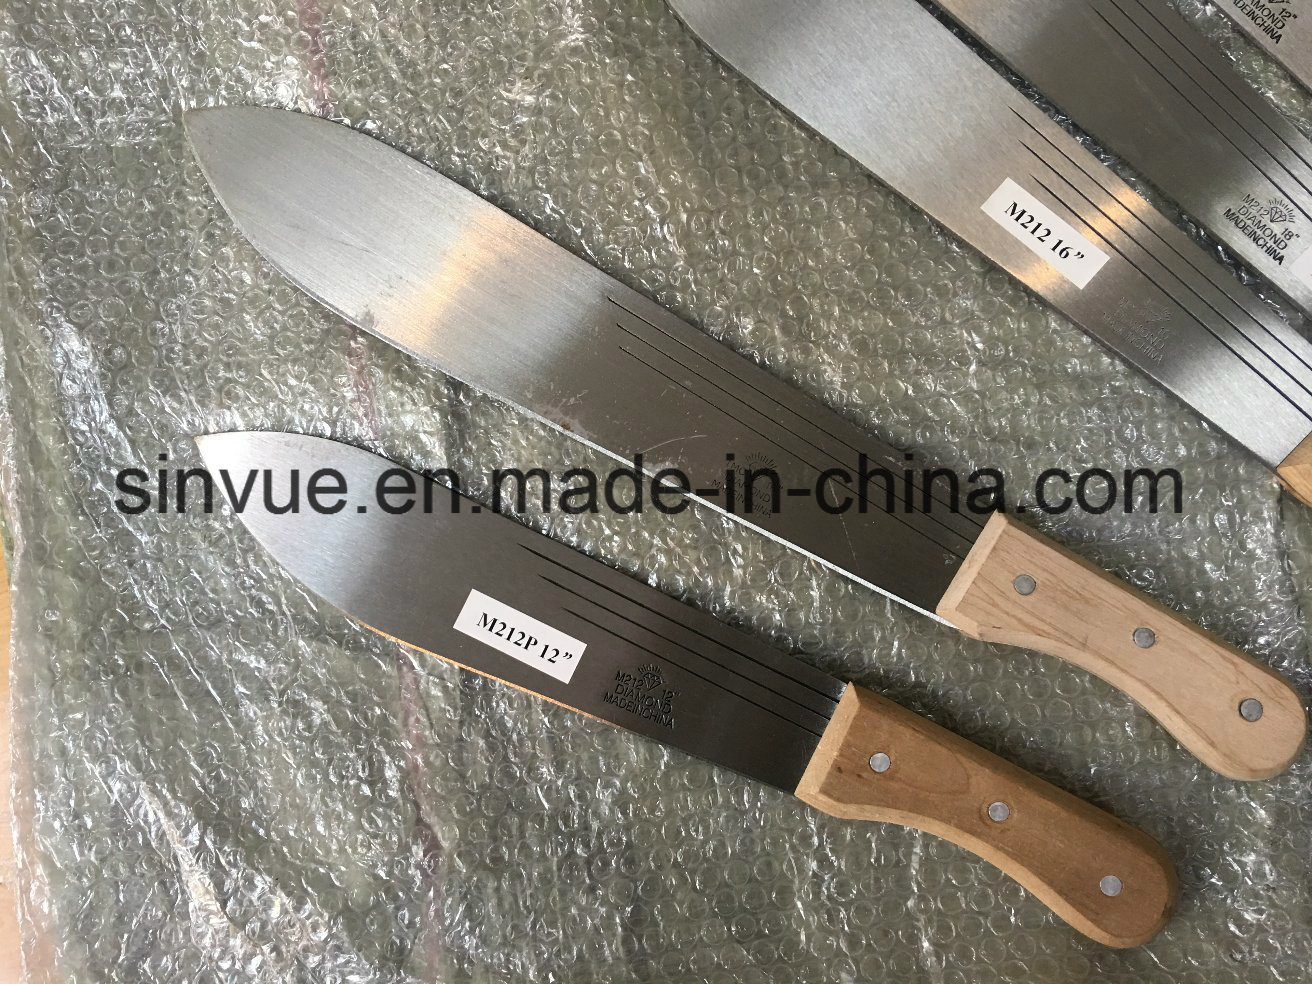 China High Carbon Steel Blade 2 4mm Blade Thickness M212